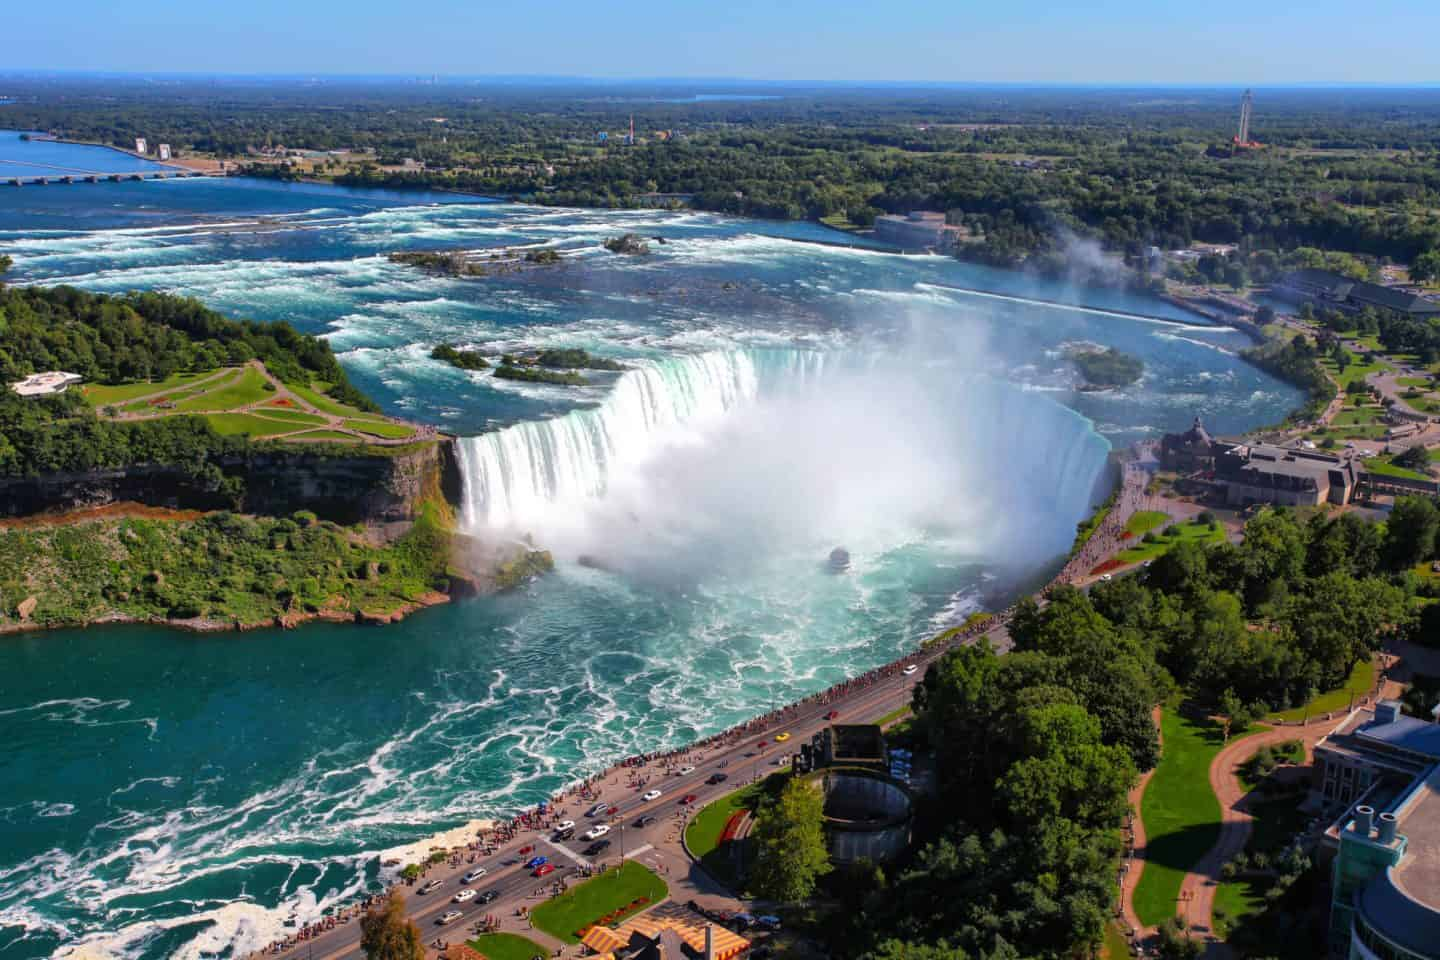 7 Must See Places To Visit In Canada - Niagara Falls